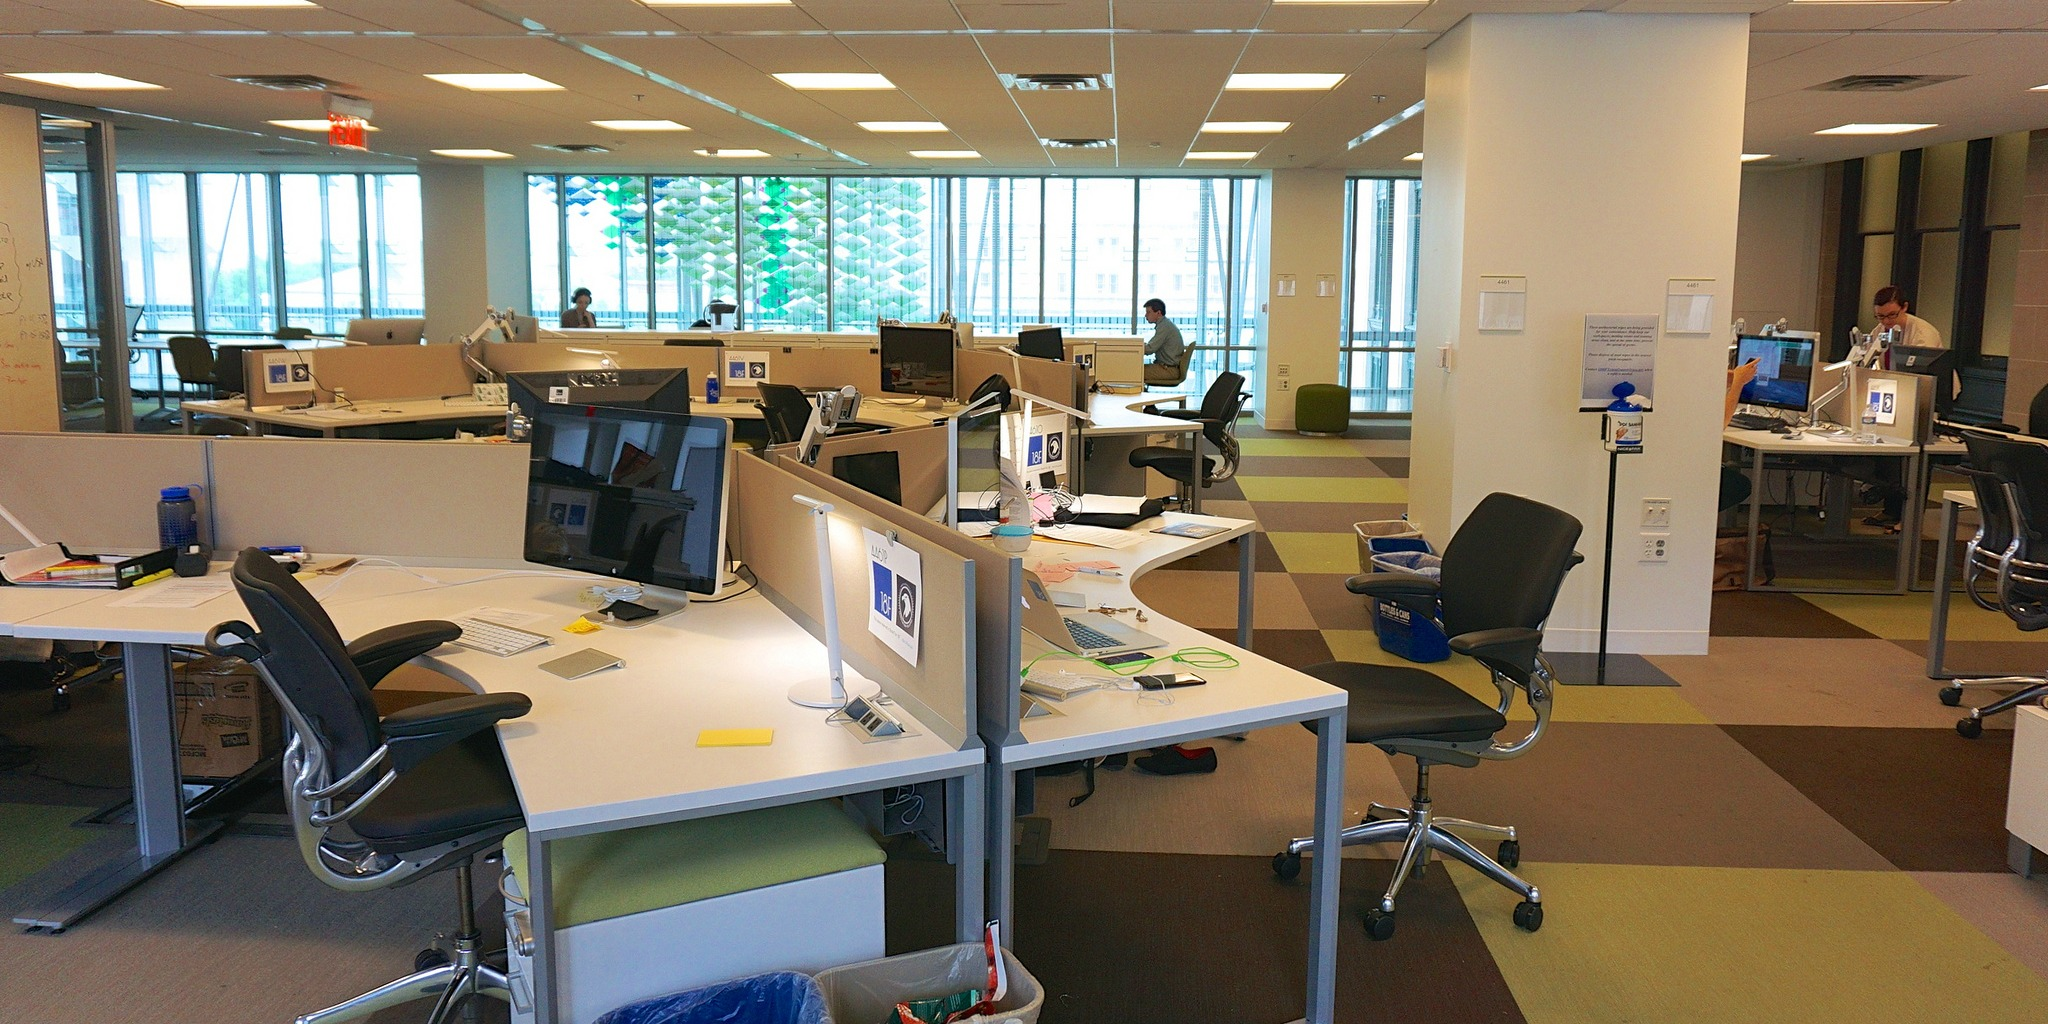 Serviced Office (Image by Ted Eytan [CC BY 2.0] via Flickr